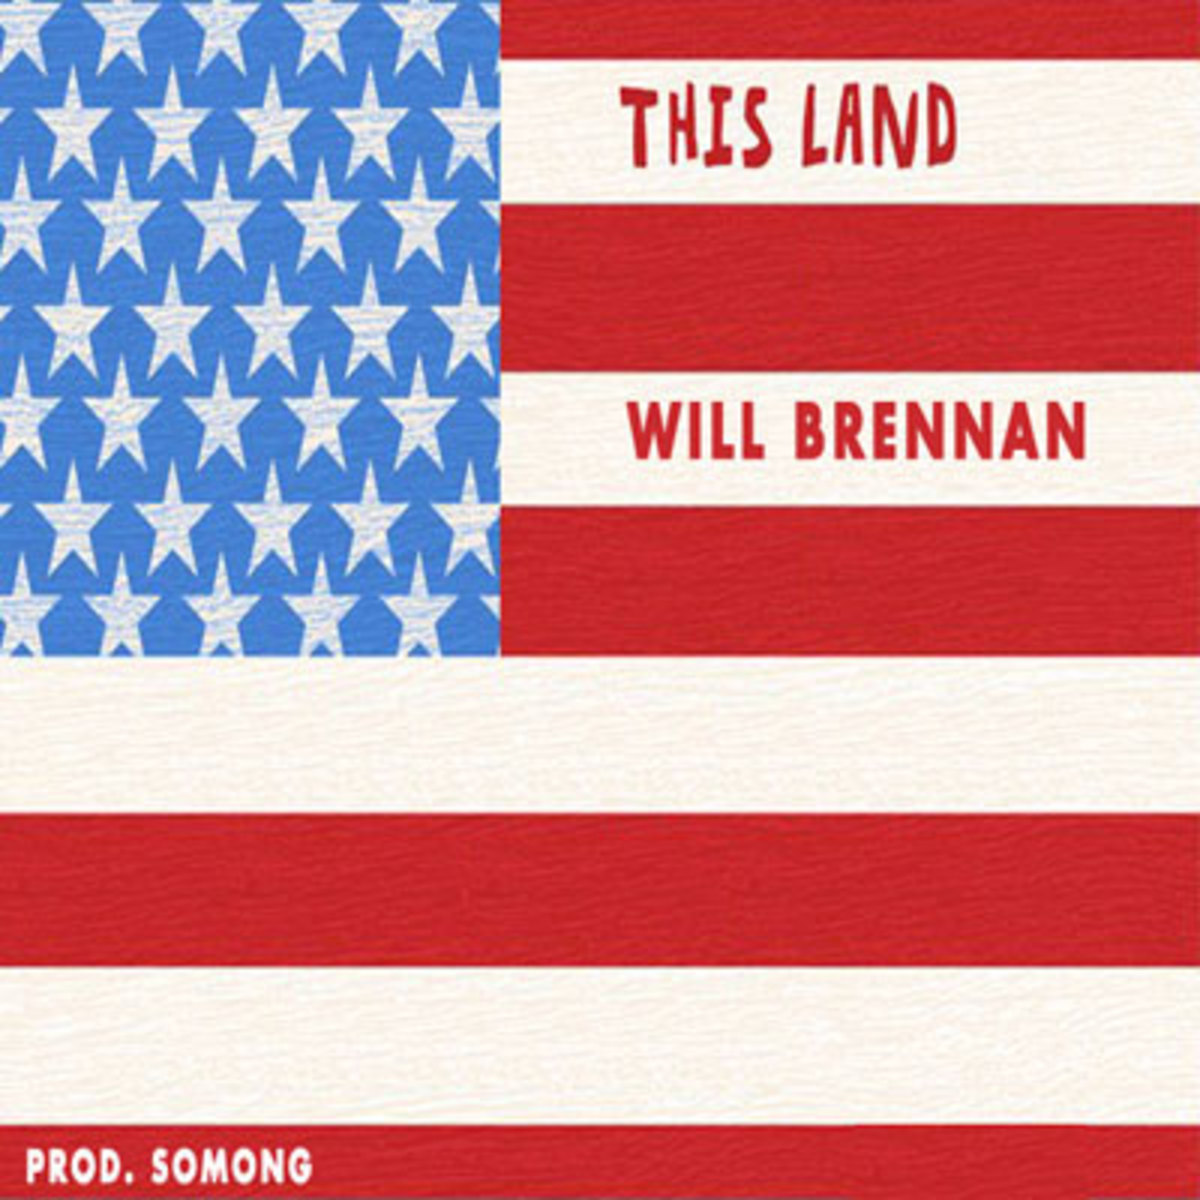 willbrennan-yourland.jpg